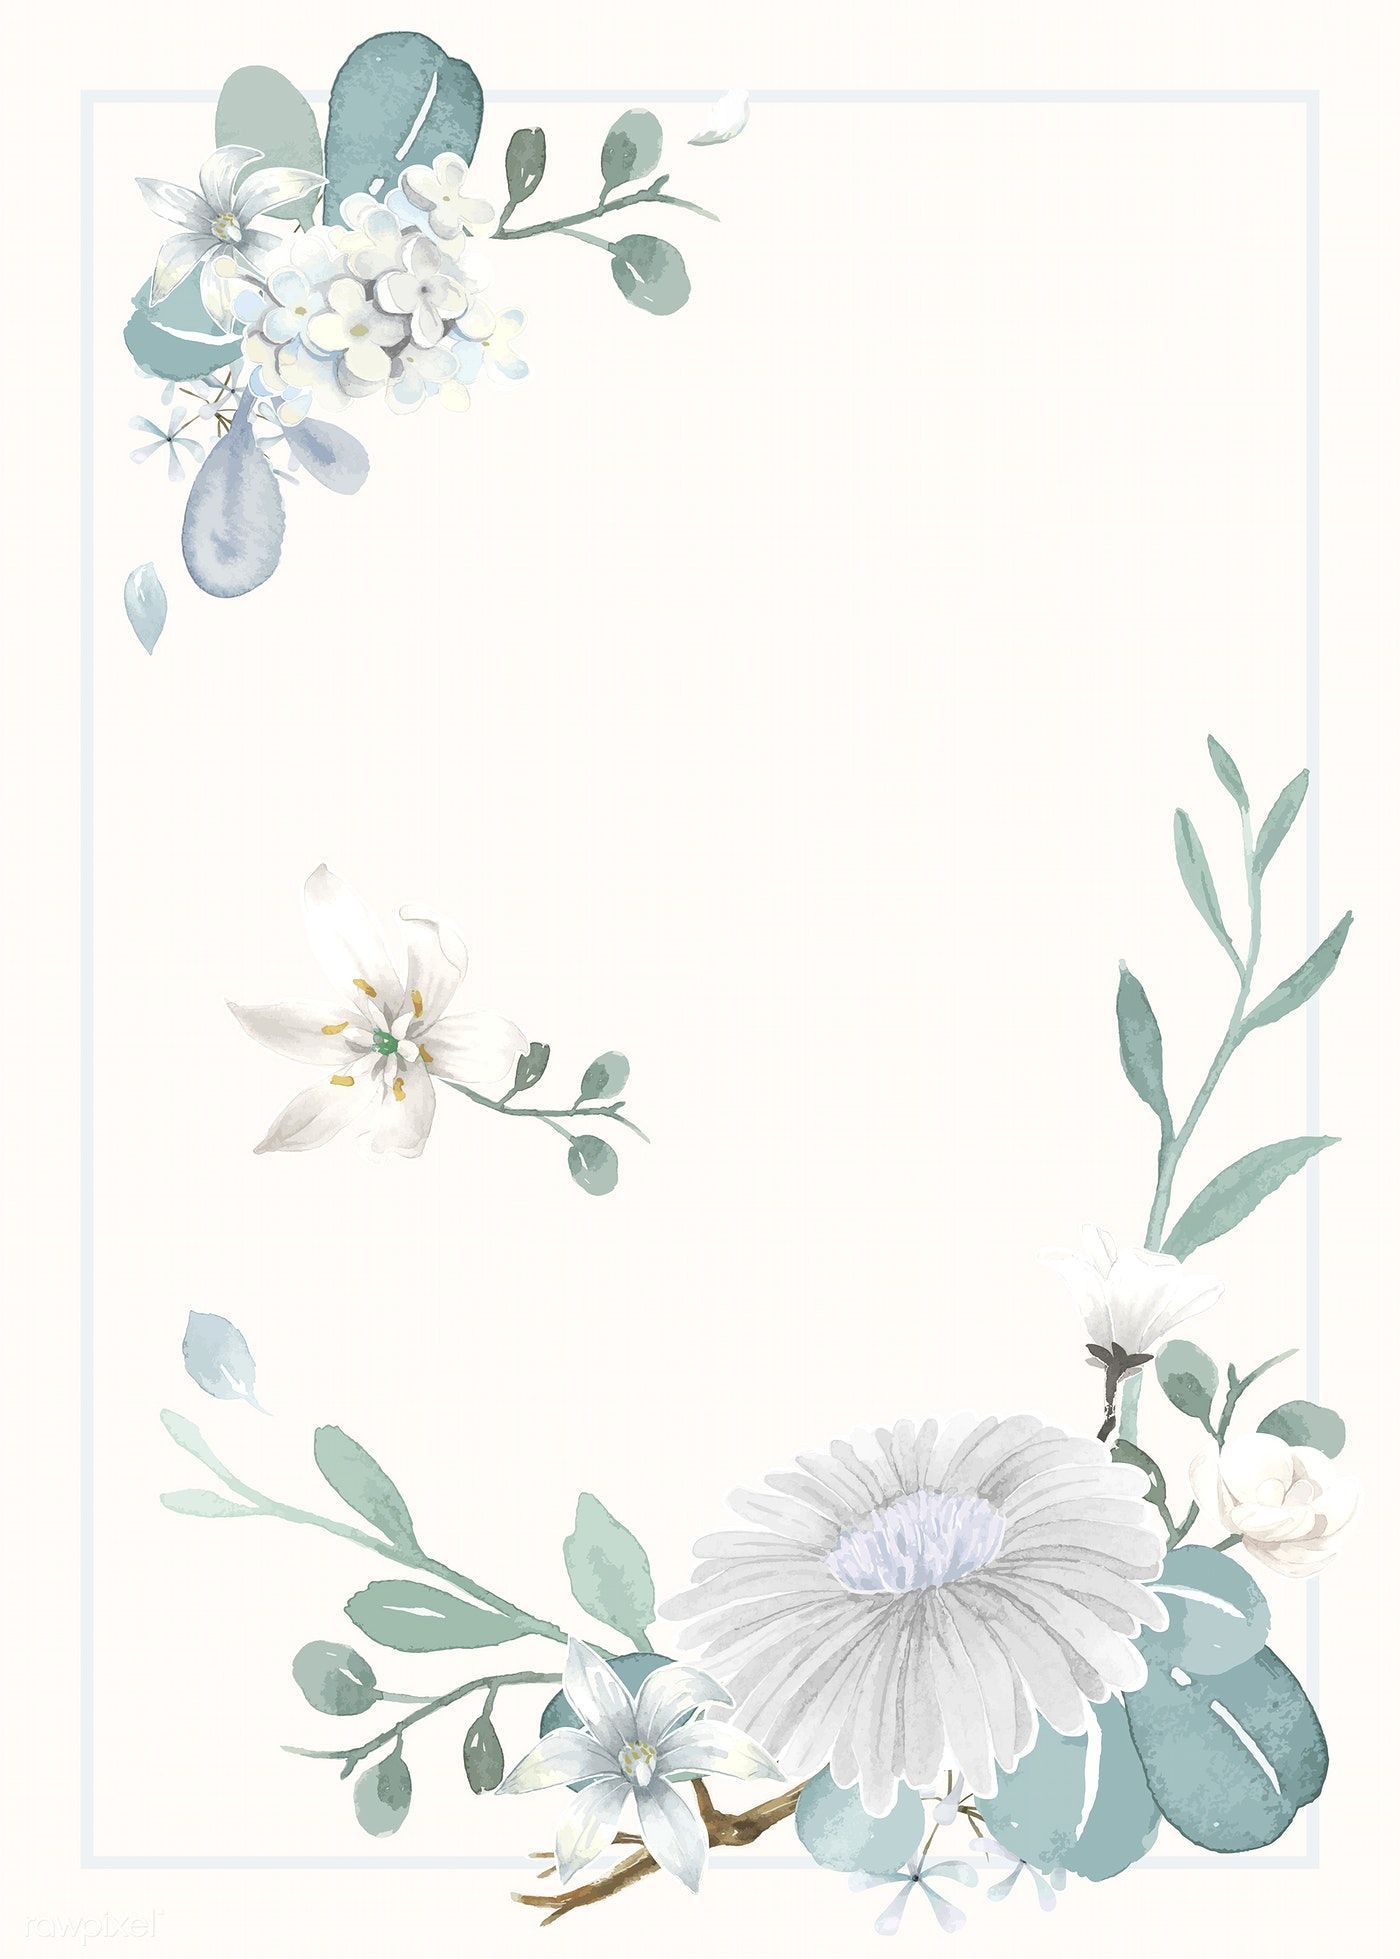 Download Premium Vector Of Invitation Card With A Light Blue Theme